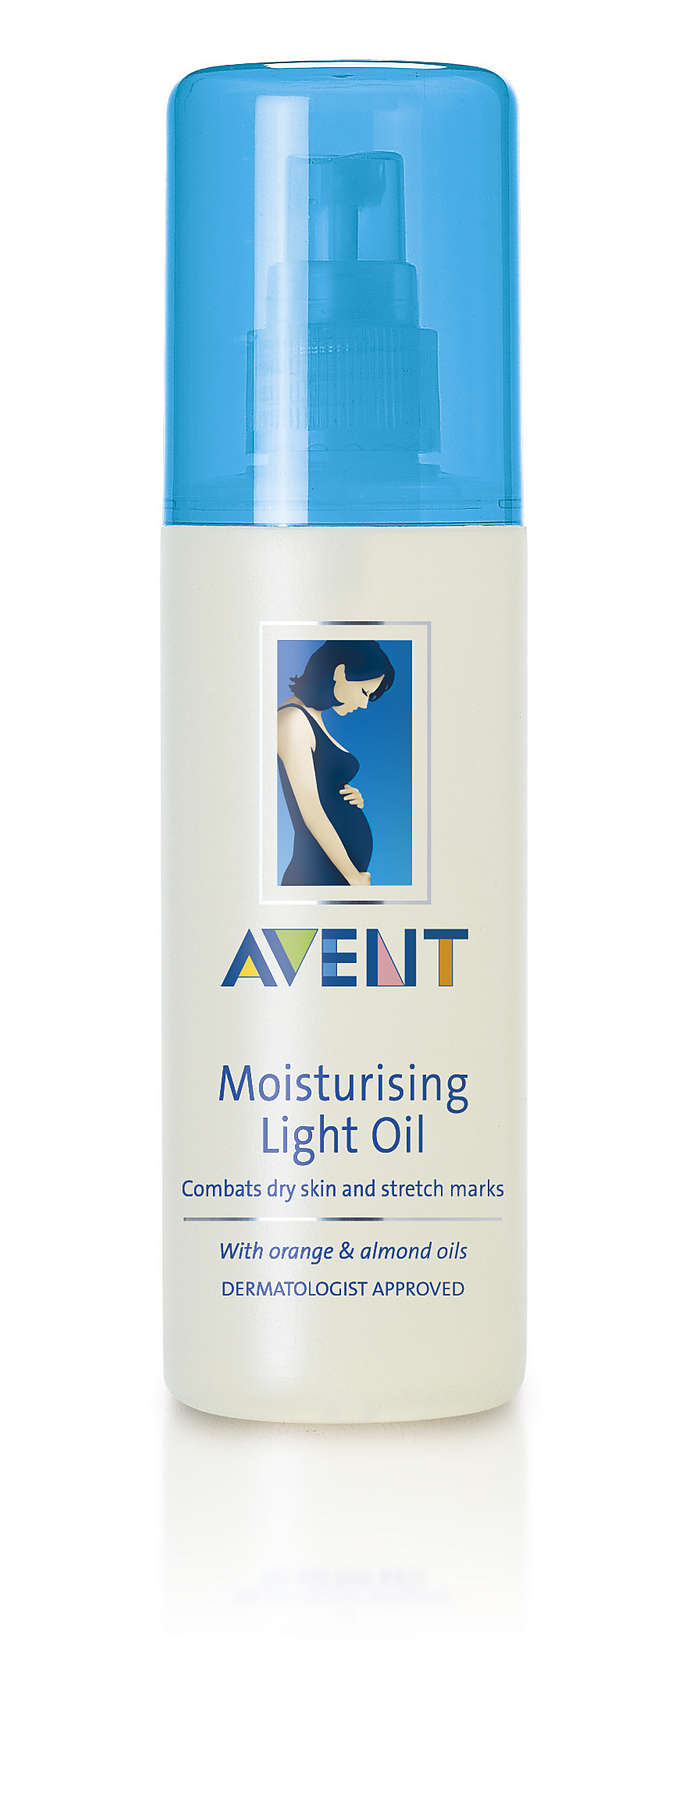 Combats dry skin and stretch marks